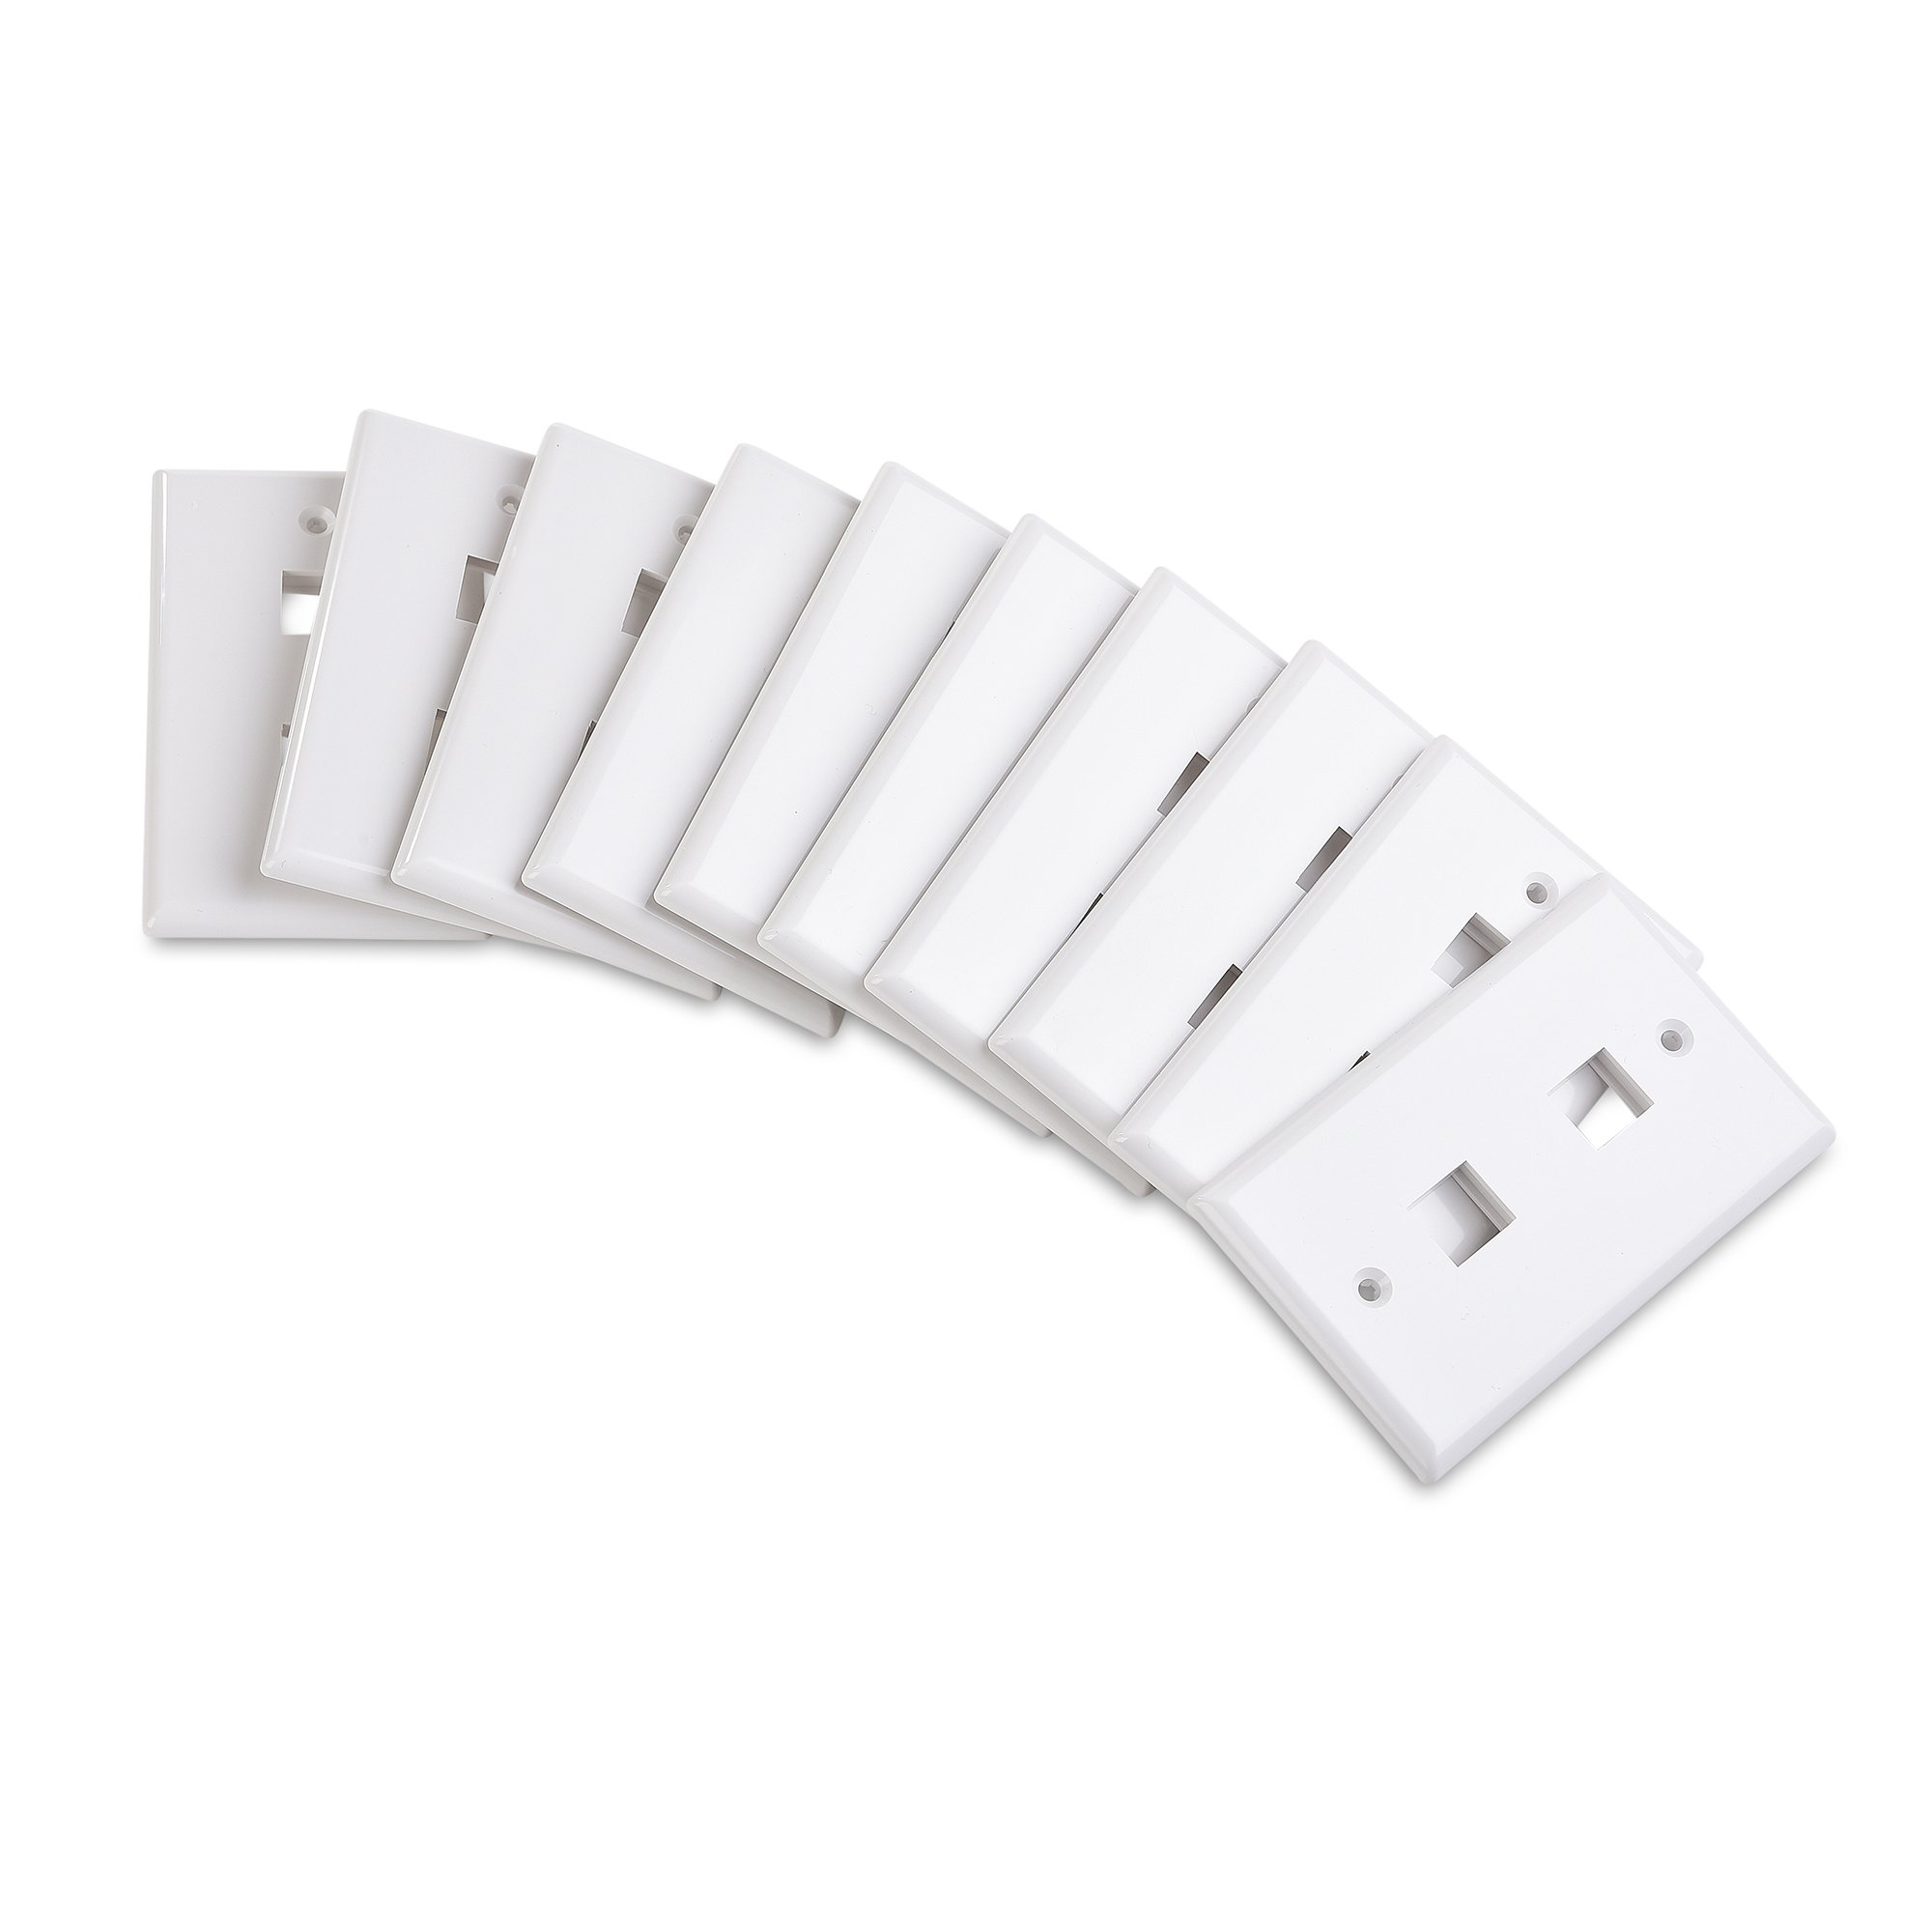 Cable Matters 10-Pack Low Profile 2-Port Keystone Jack Wall Plate in White